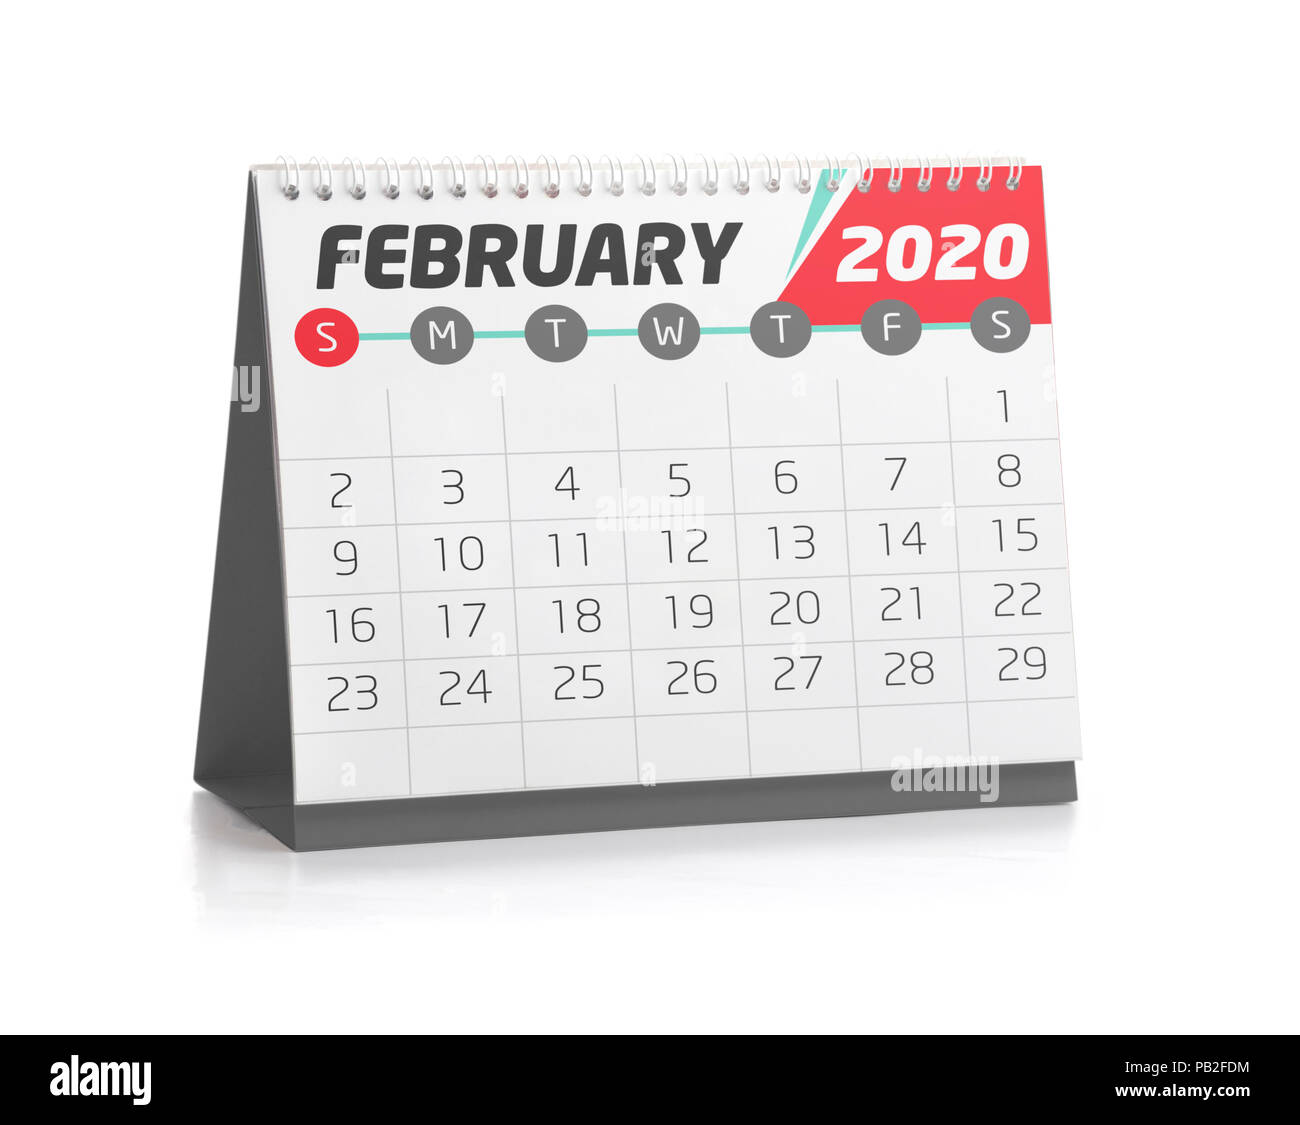 Calendrier Fevrier 2020.Calendrier De Bureau Blanc Fevrier 2020 Isolated On White